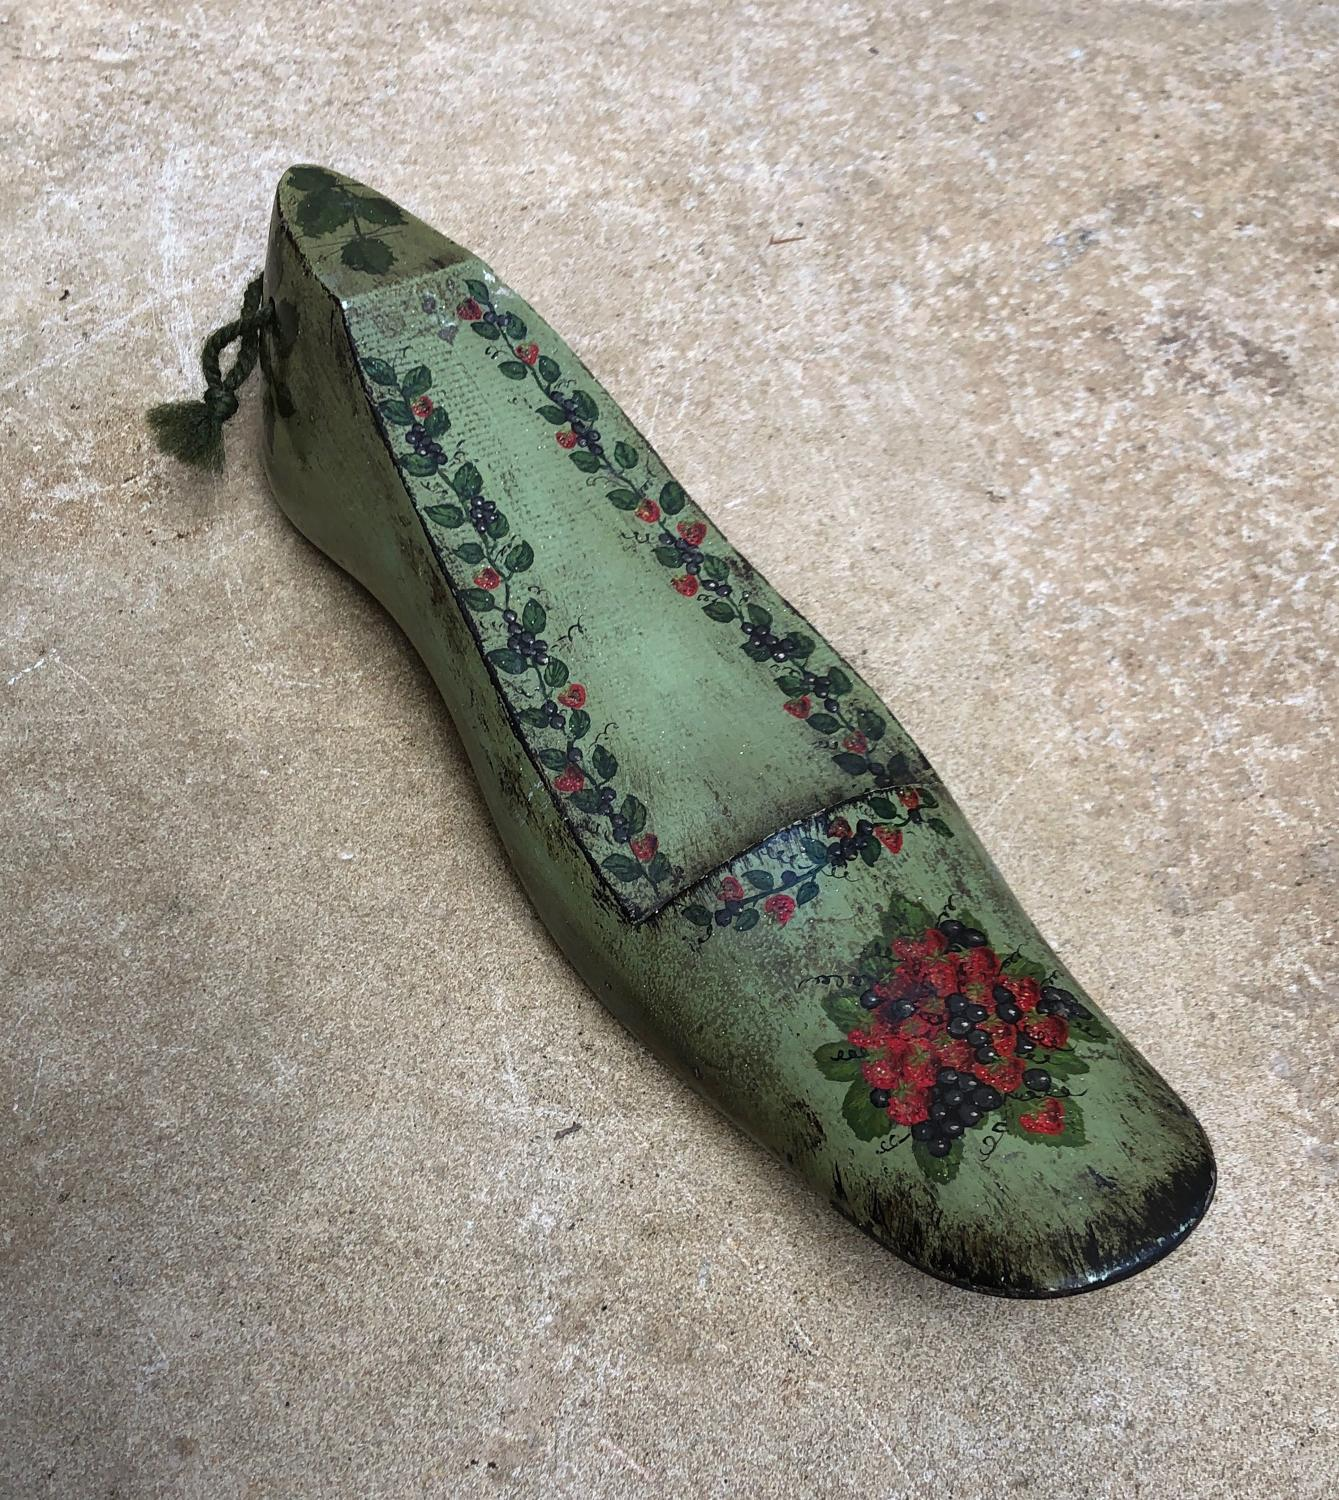 Decorative Victorian Shoe Last - Wonderful Painting